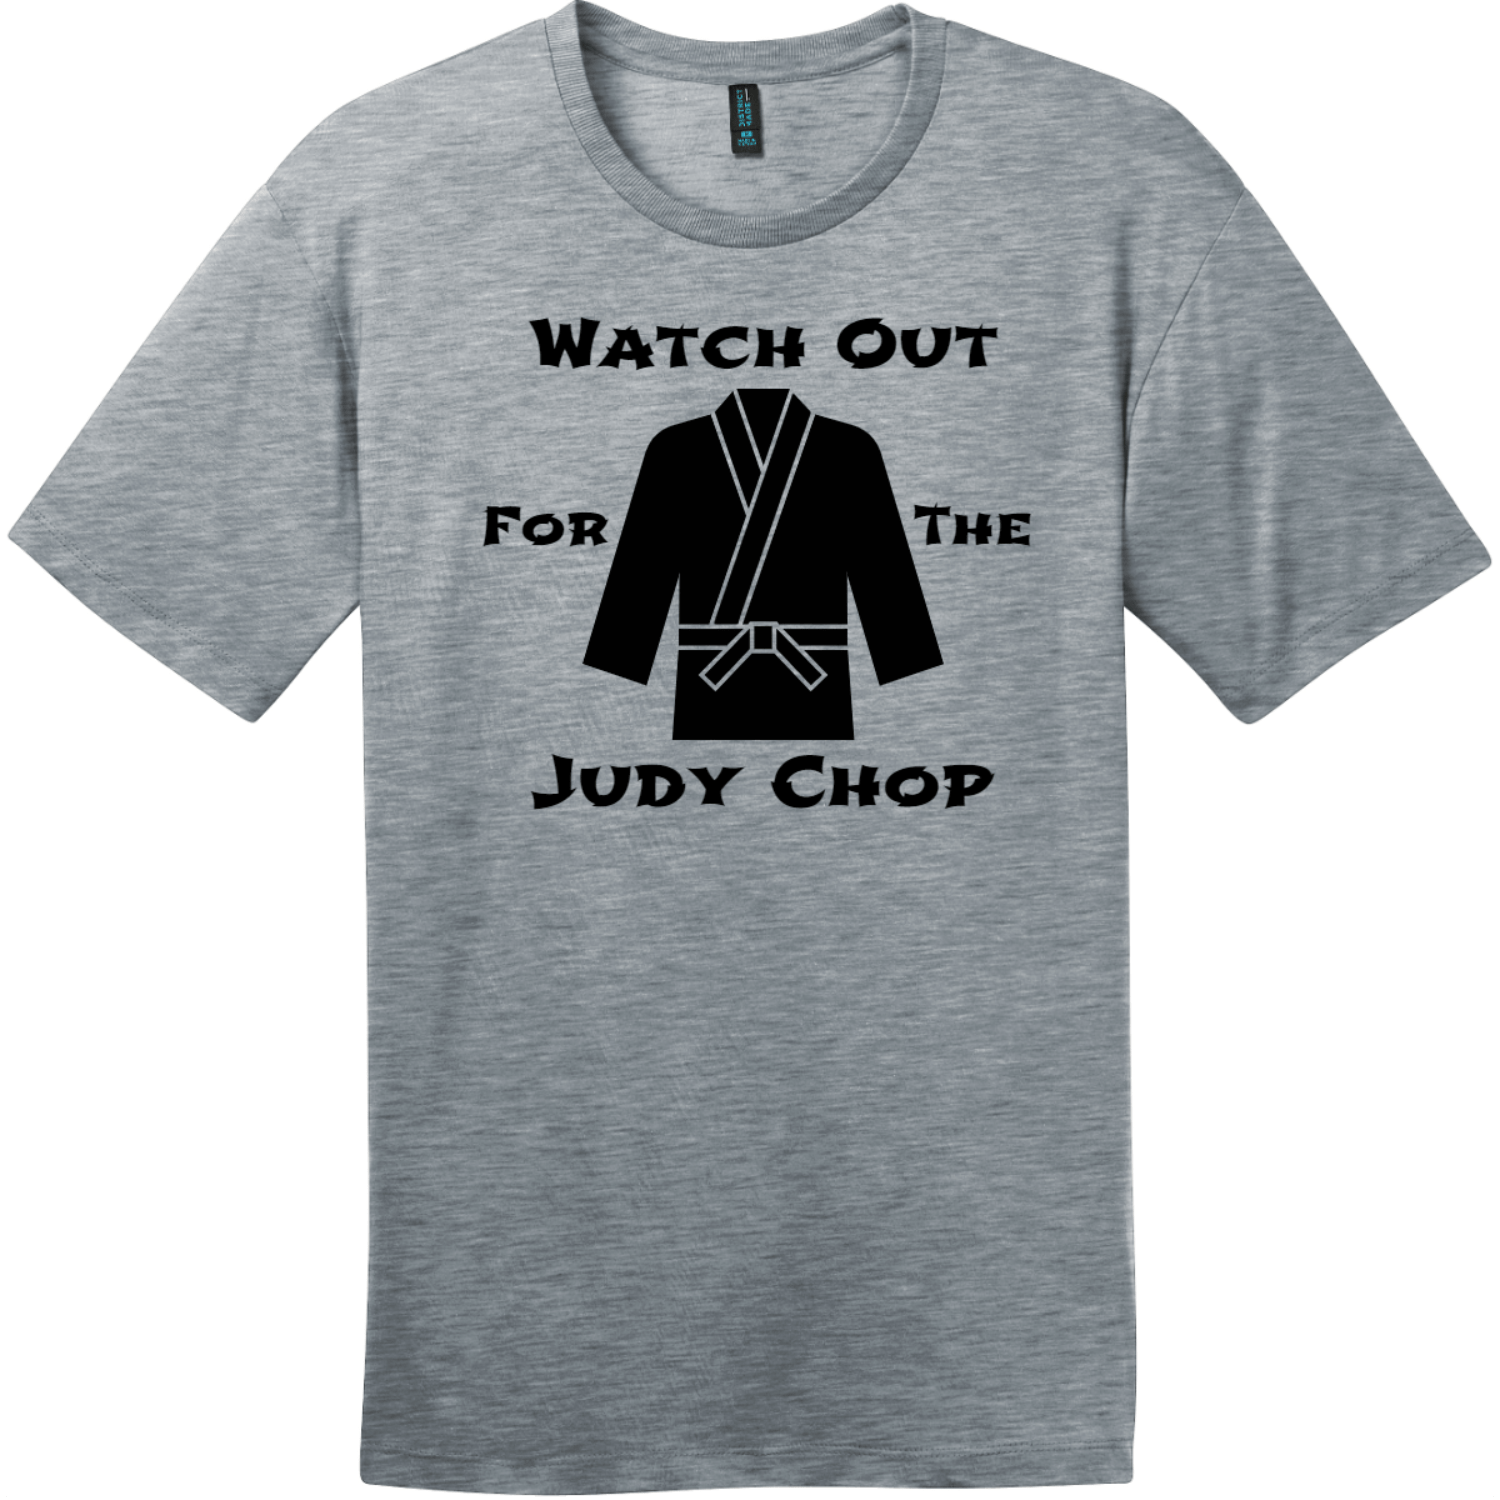 Watch Out For The Judy Chop T-Shirt Heathered Steel District Perfect Weight Tee DT104